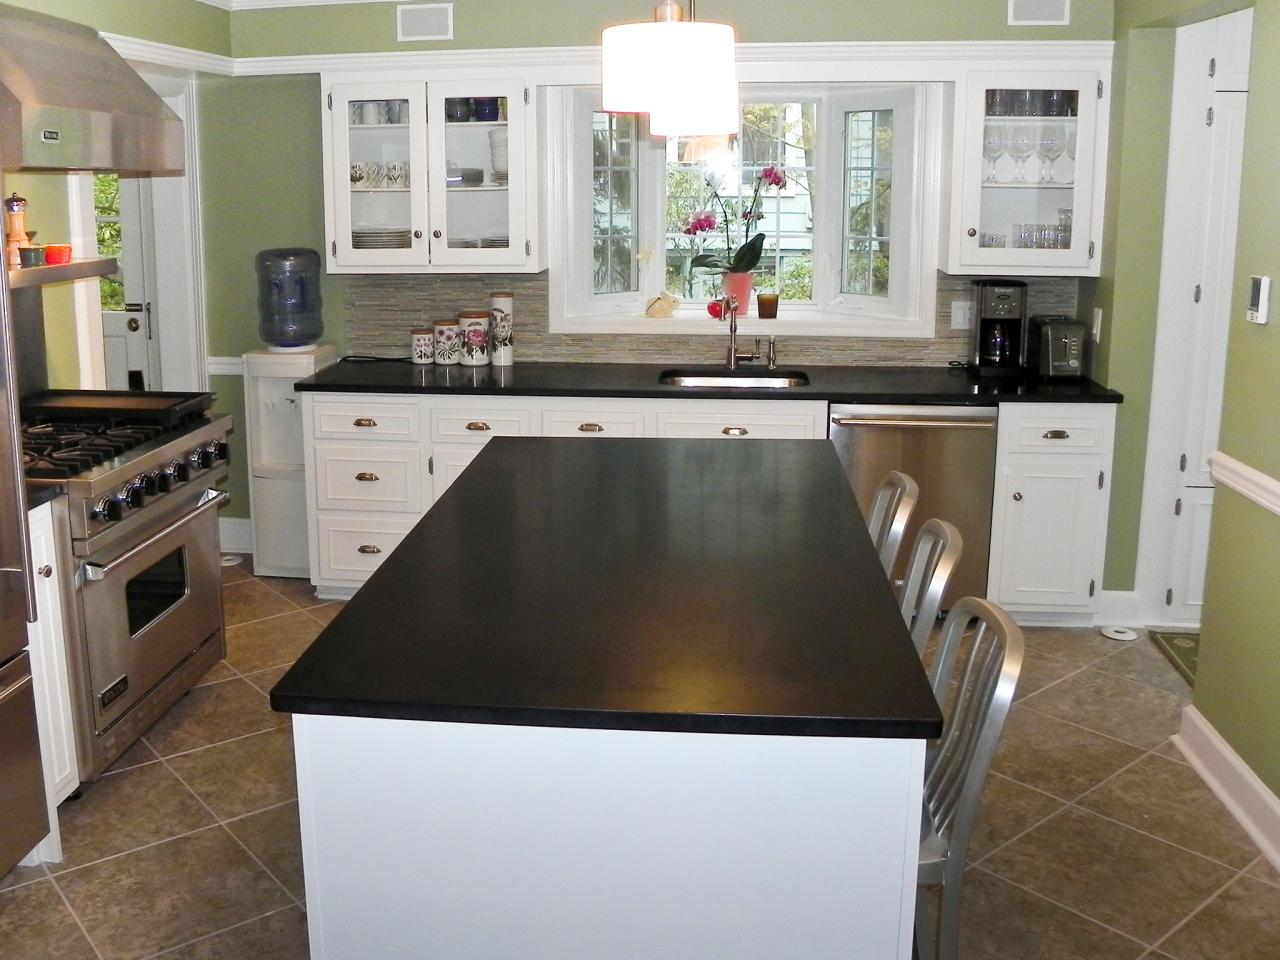 dark granite countertops - Kitchen Design With Granite Countertops